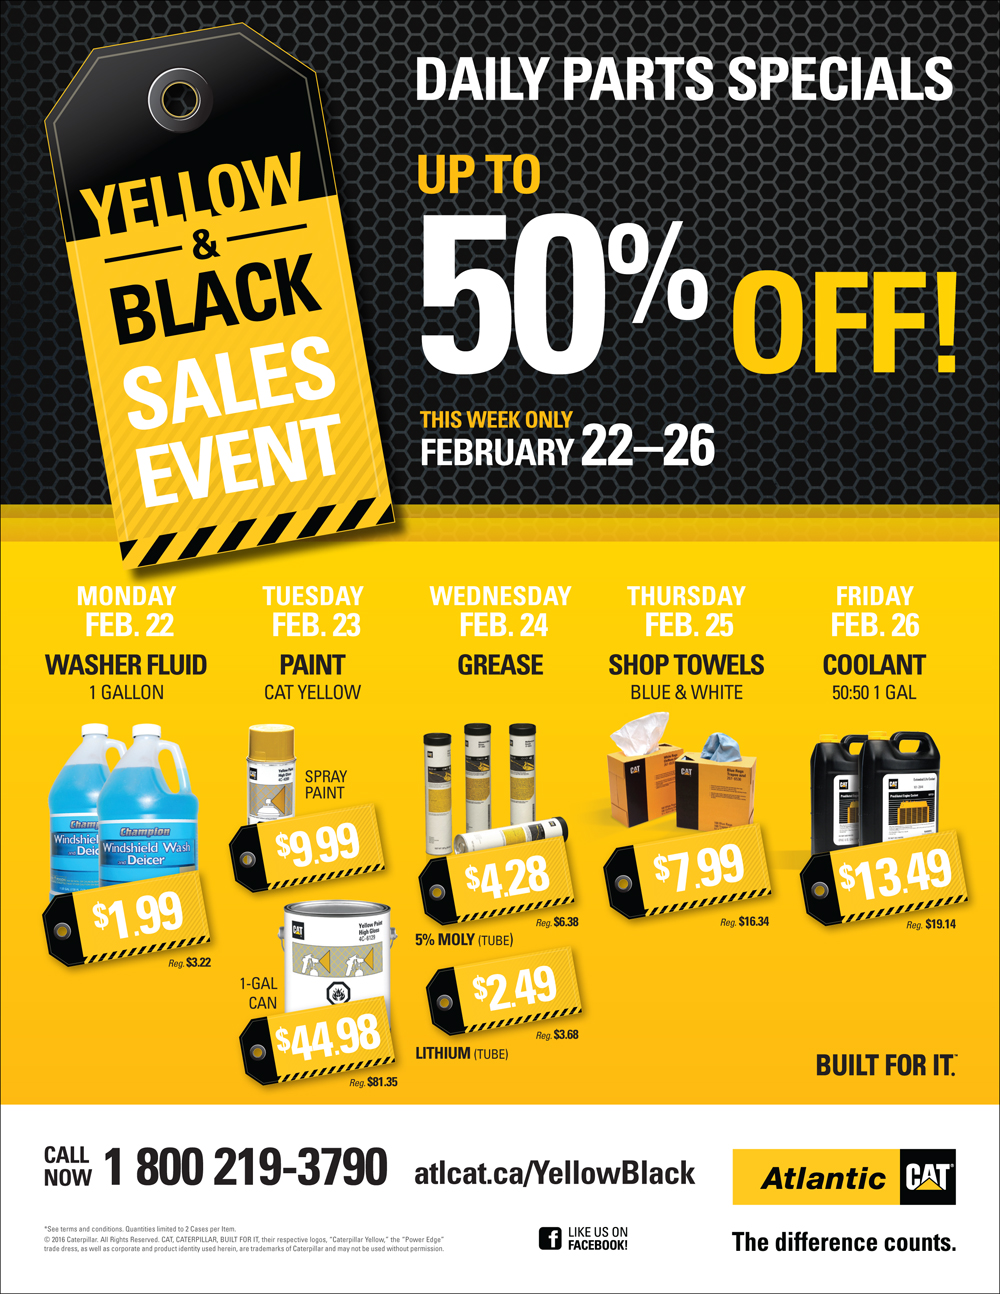 Black and Yellow Sales Event Flyer